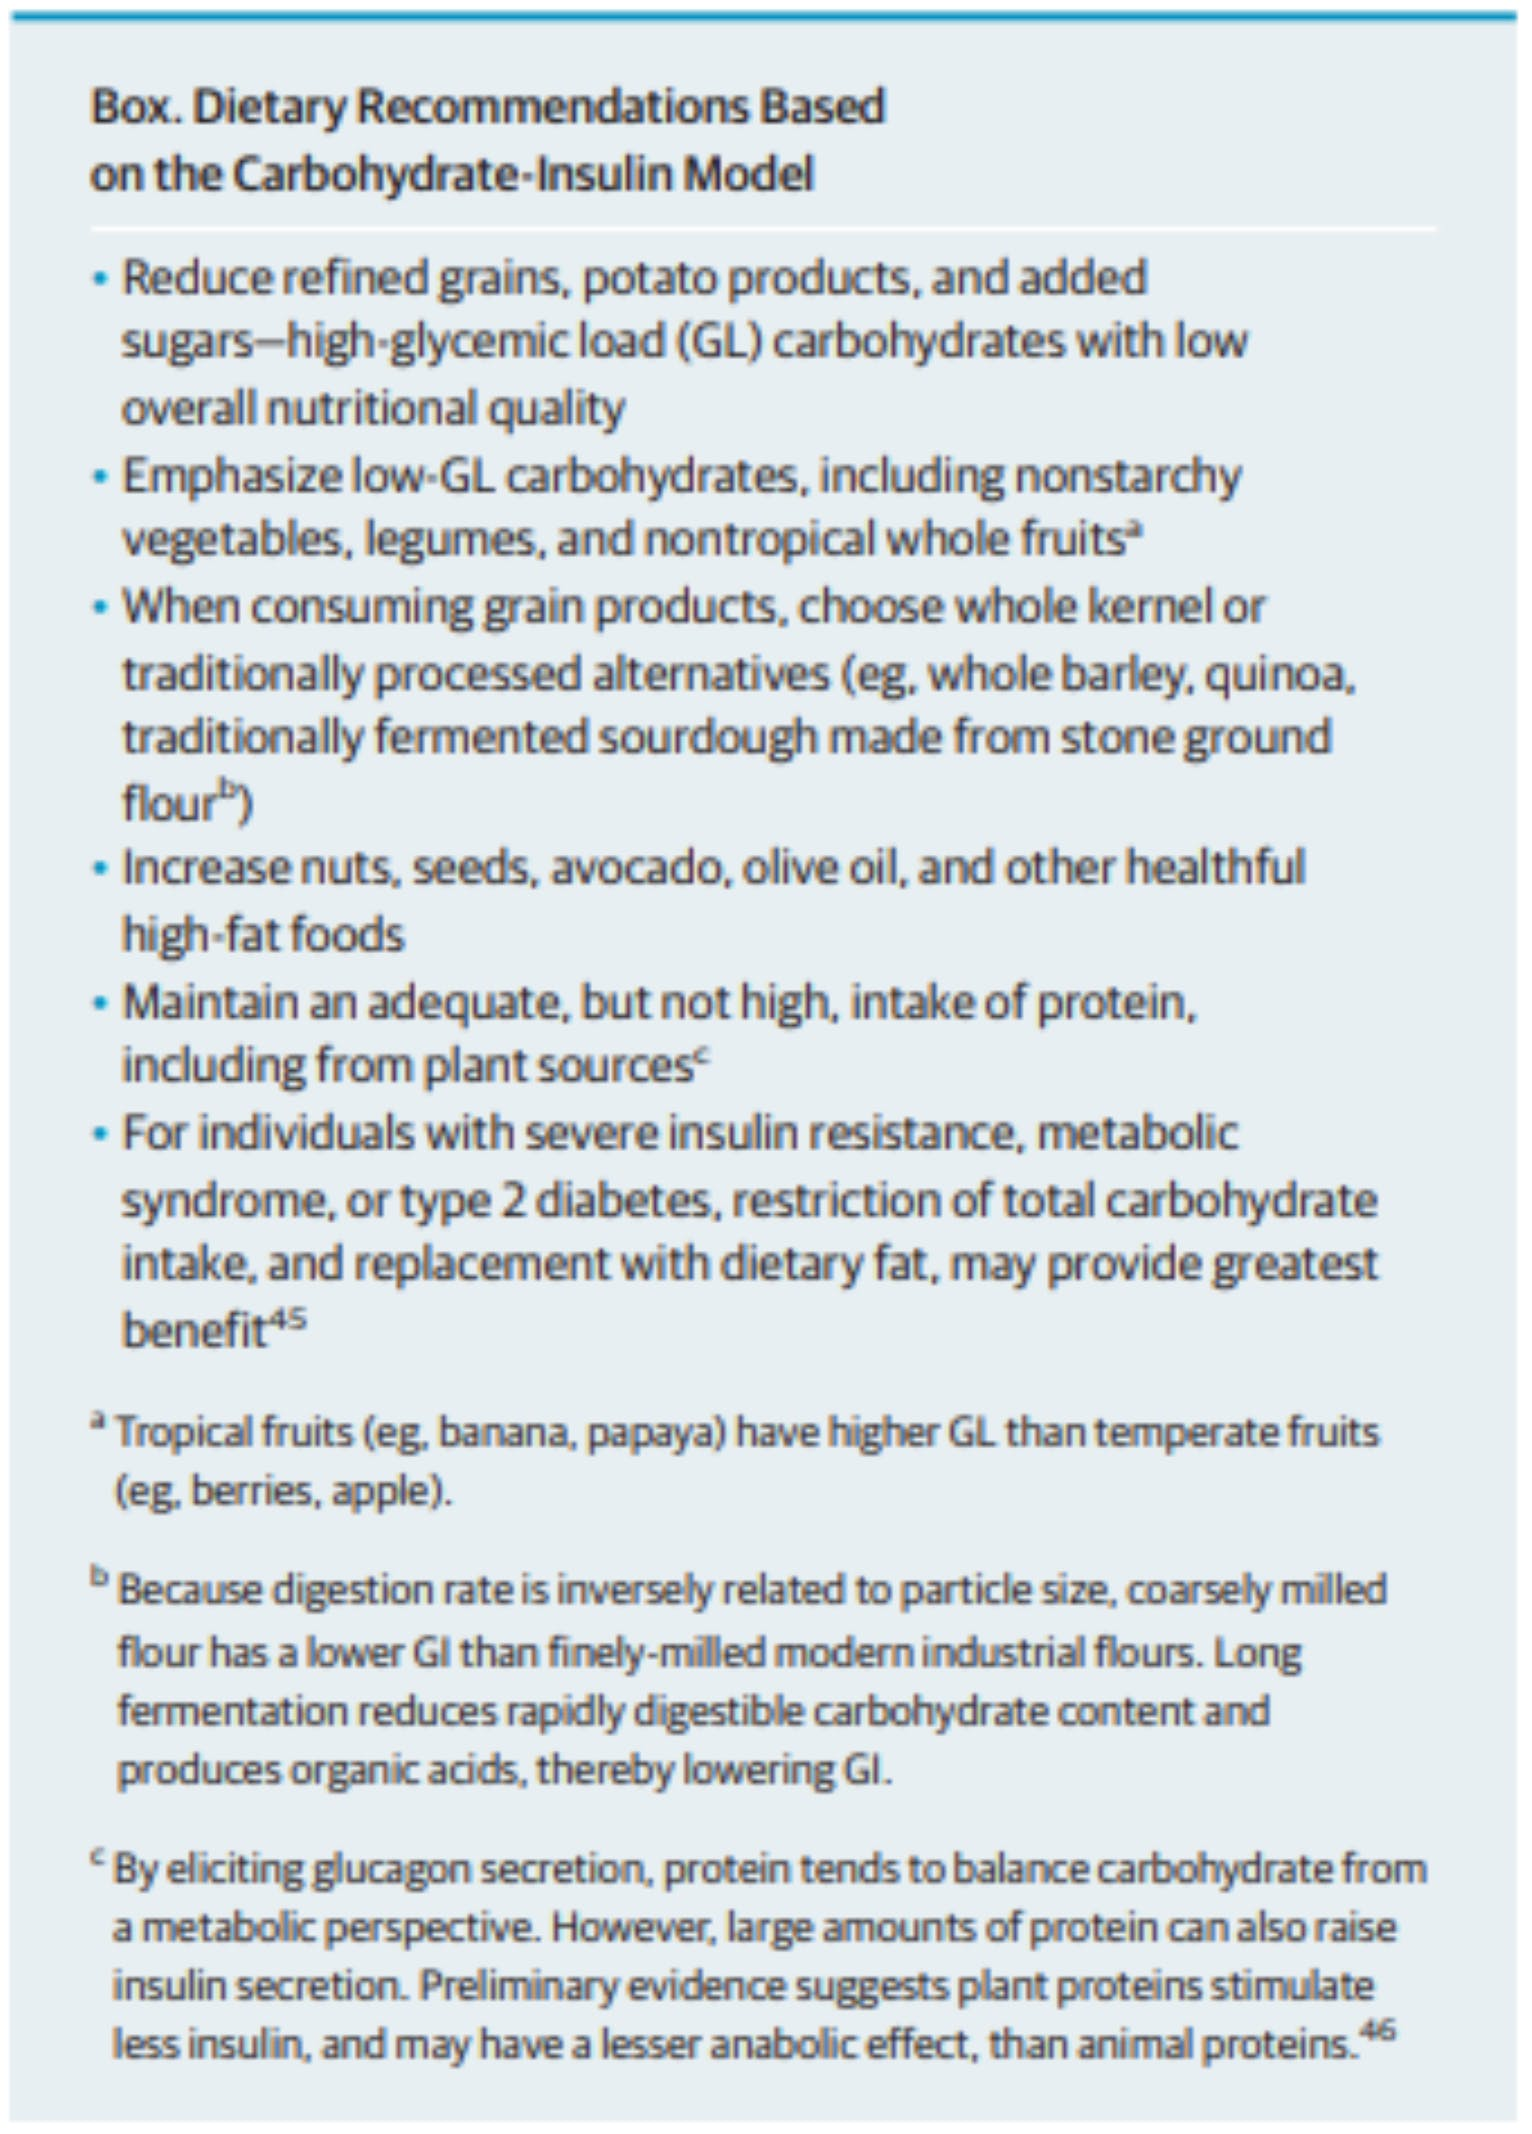 Dietary recommendations based on the carb insulin model